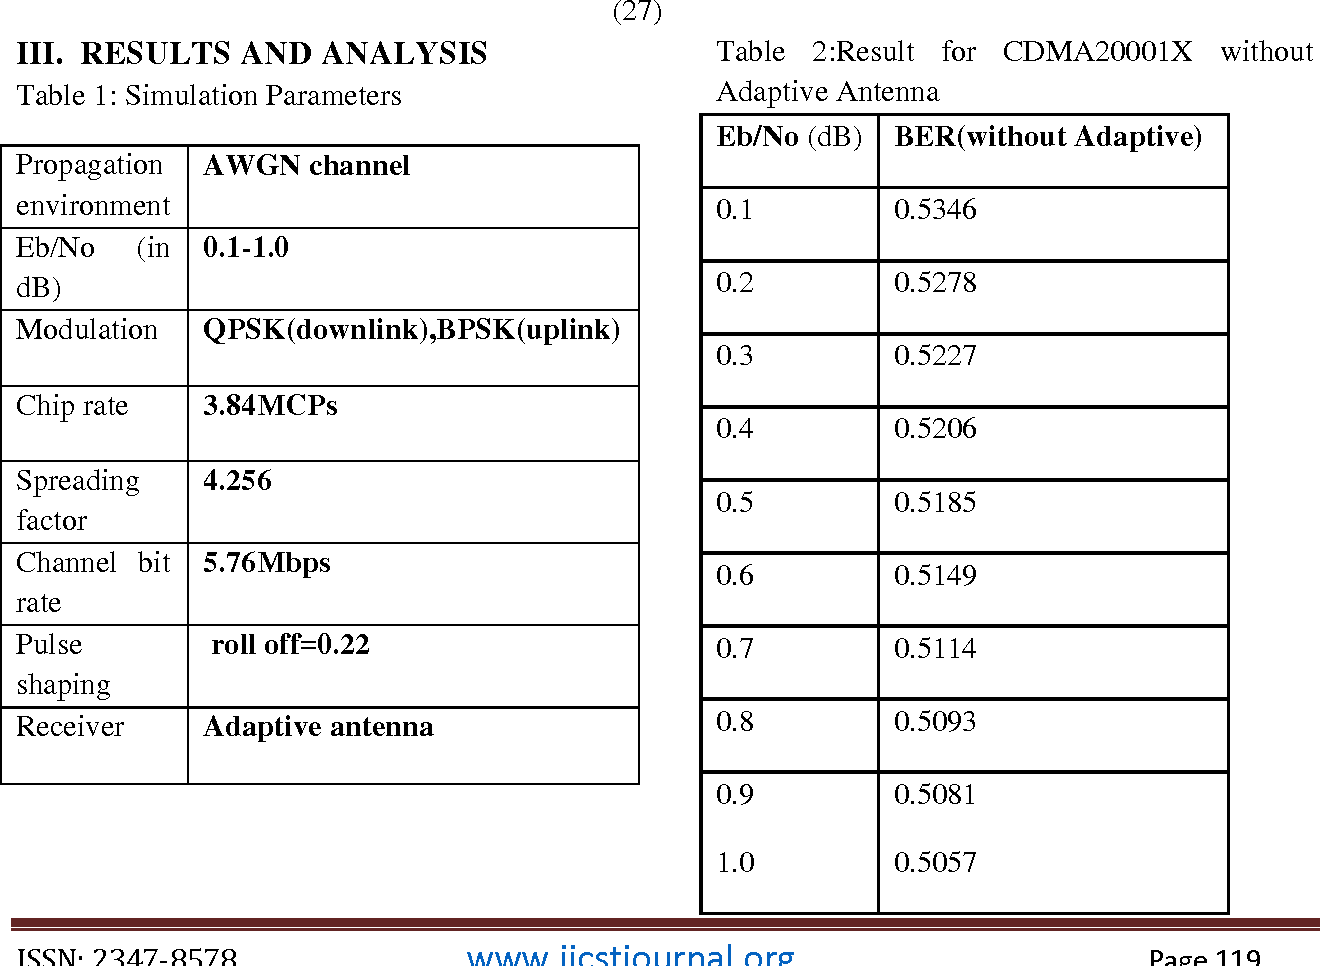 Table 2 from Analysis of Base Station Adaptive Antenna Array